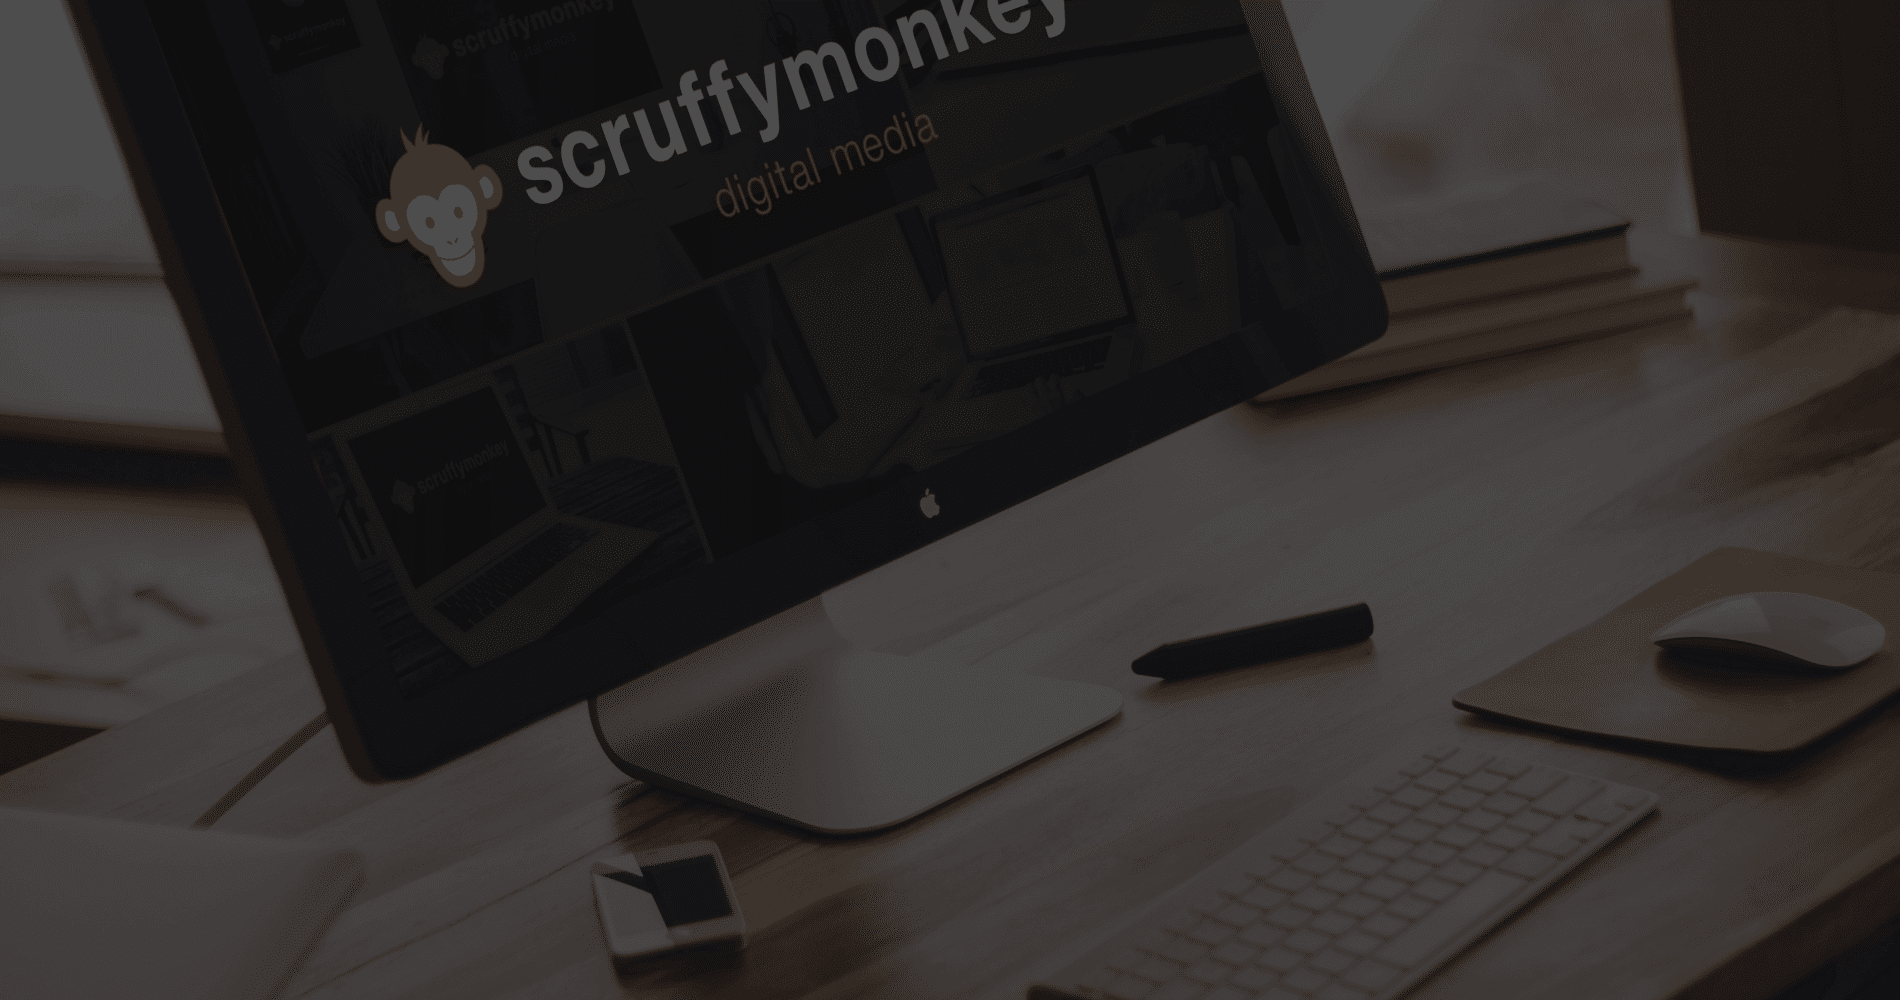 Scruffymonkey Web Design Bolton Dark Parallax Background